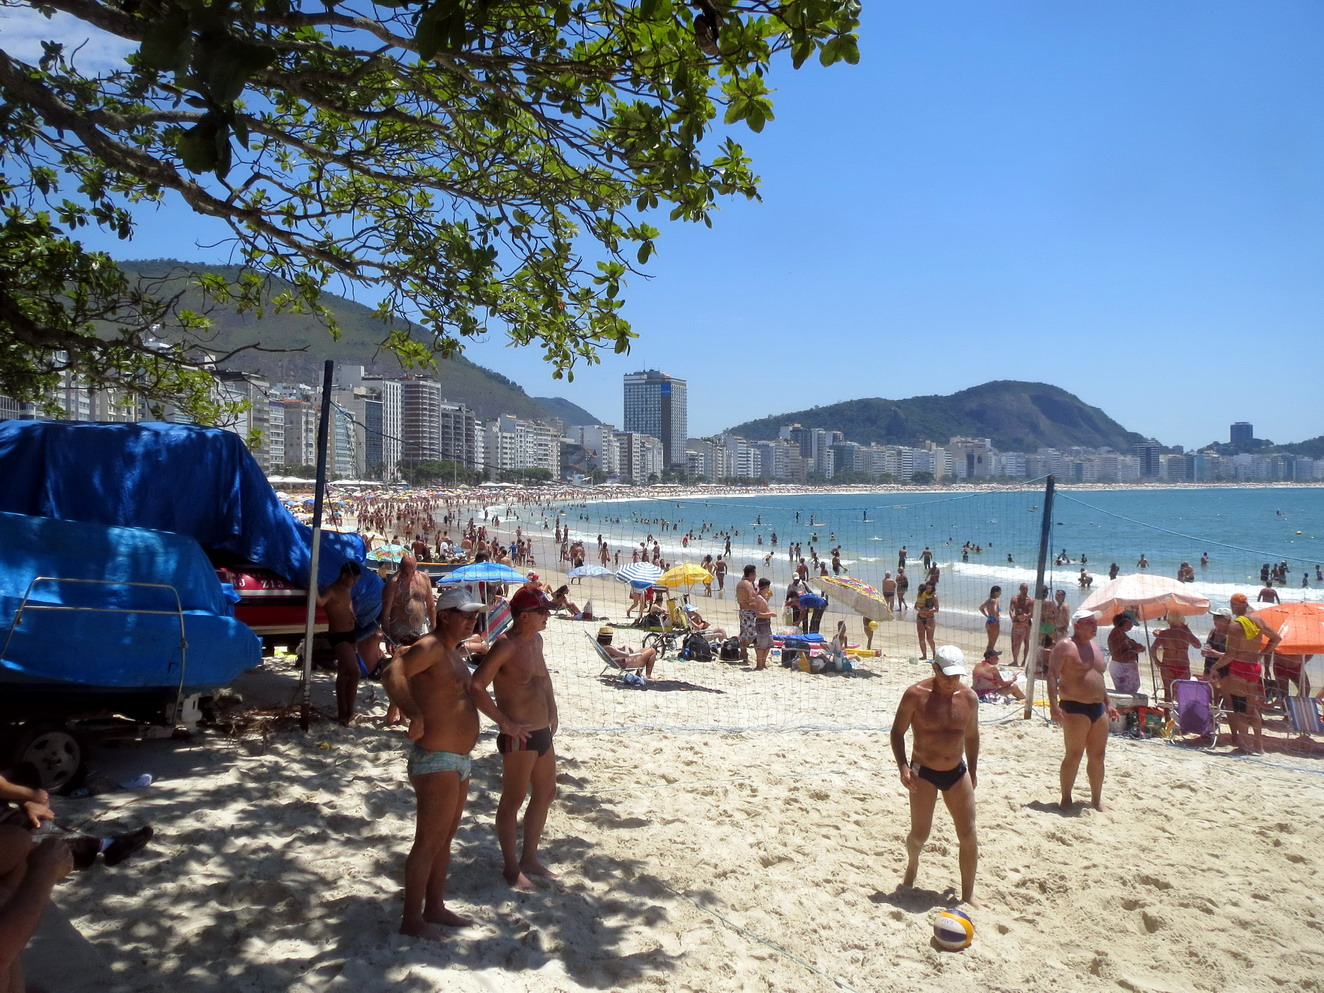 43. Plage de Copacabana, beach volley, sport national